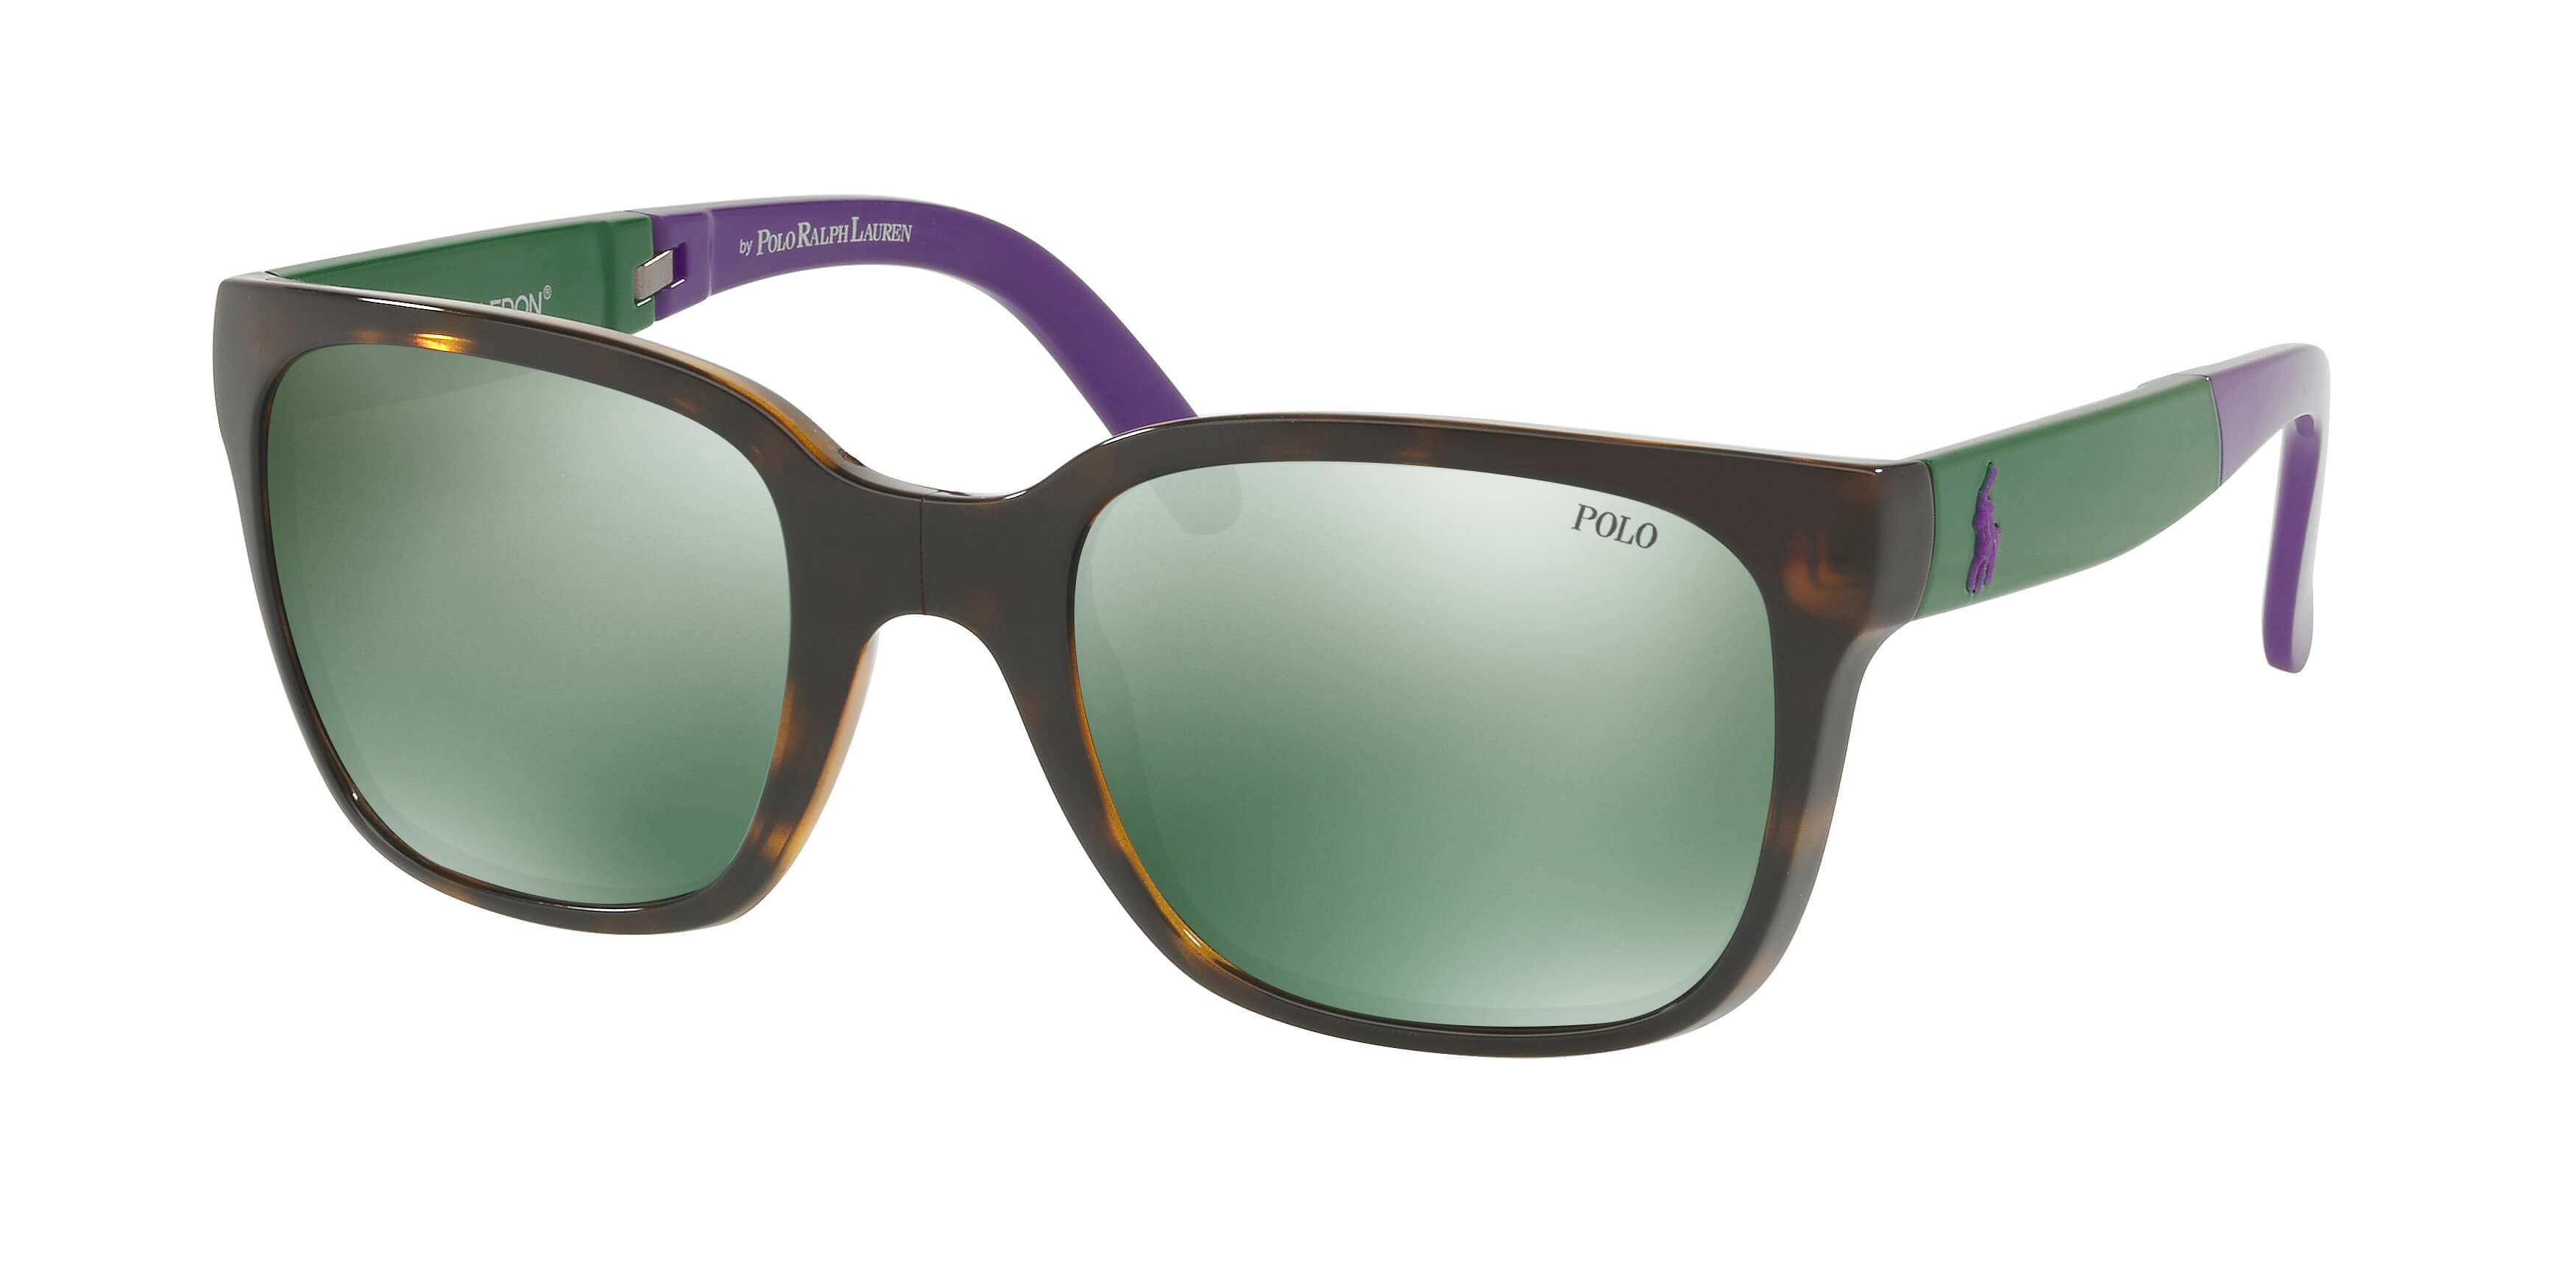 Polo glasses wimbledon PH4089